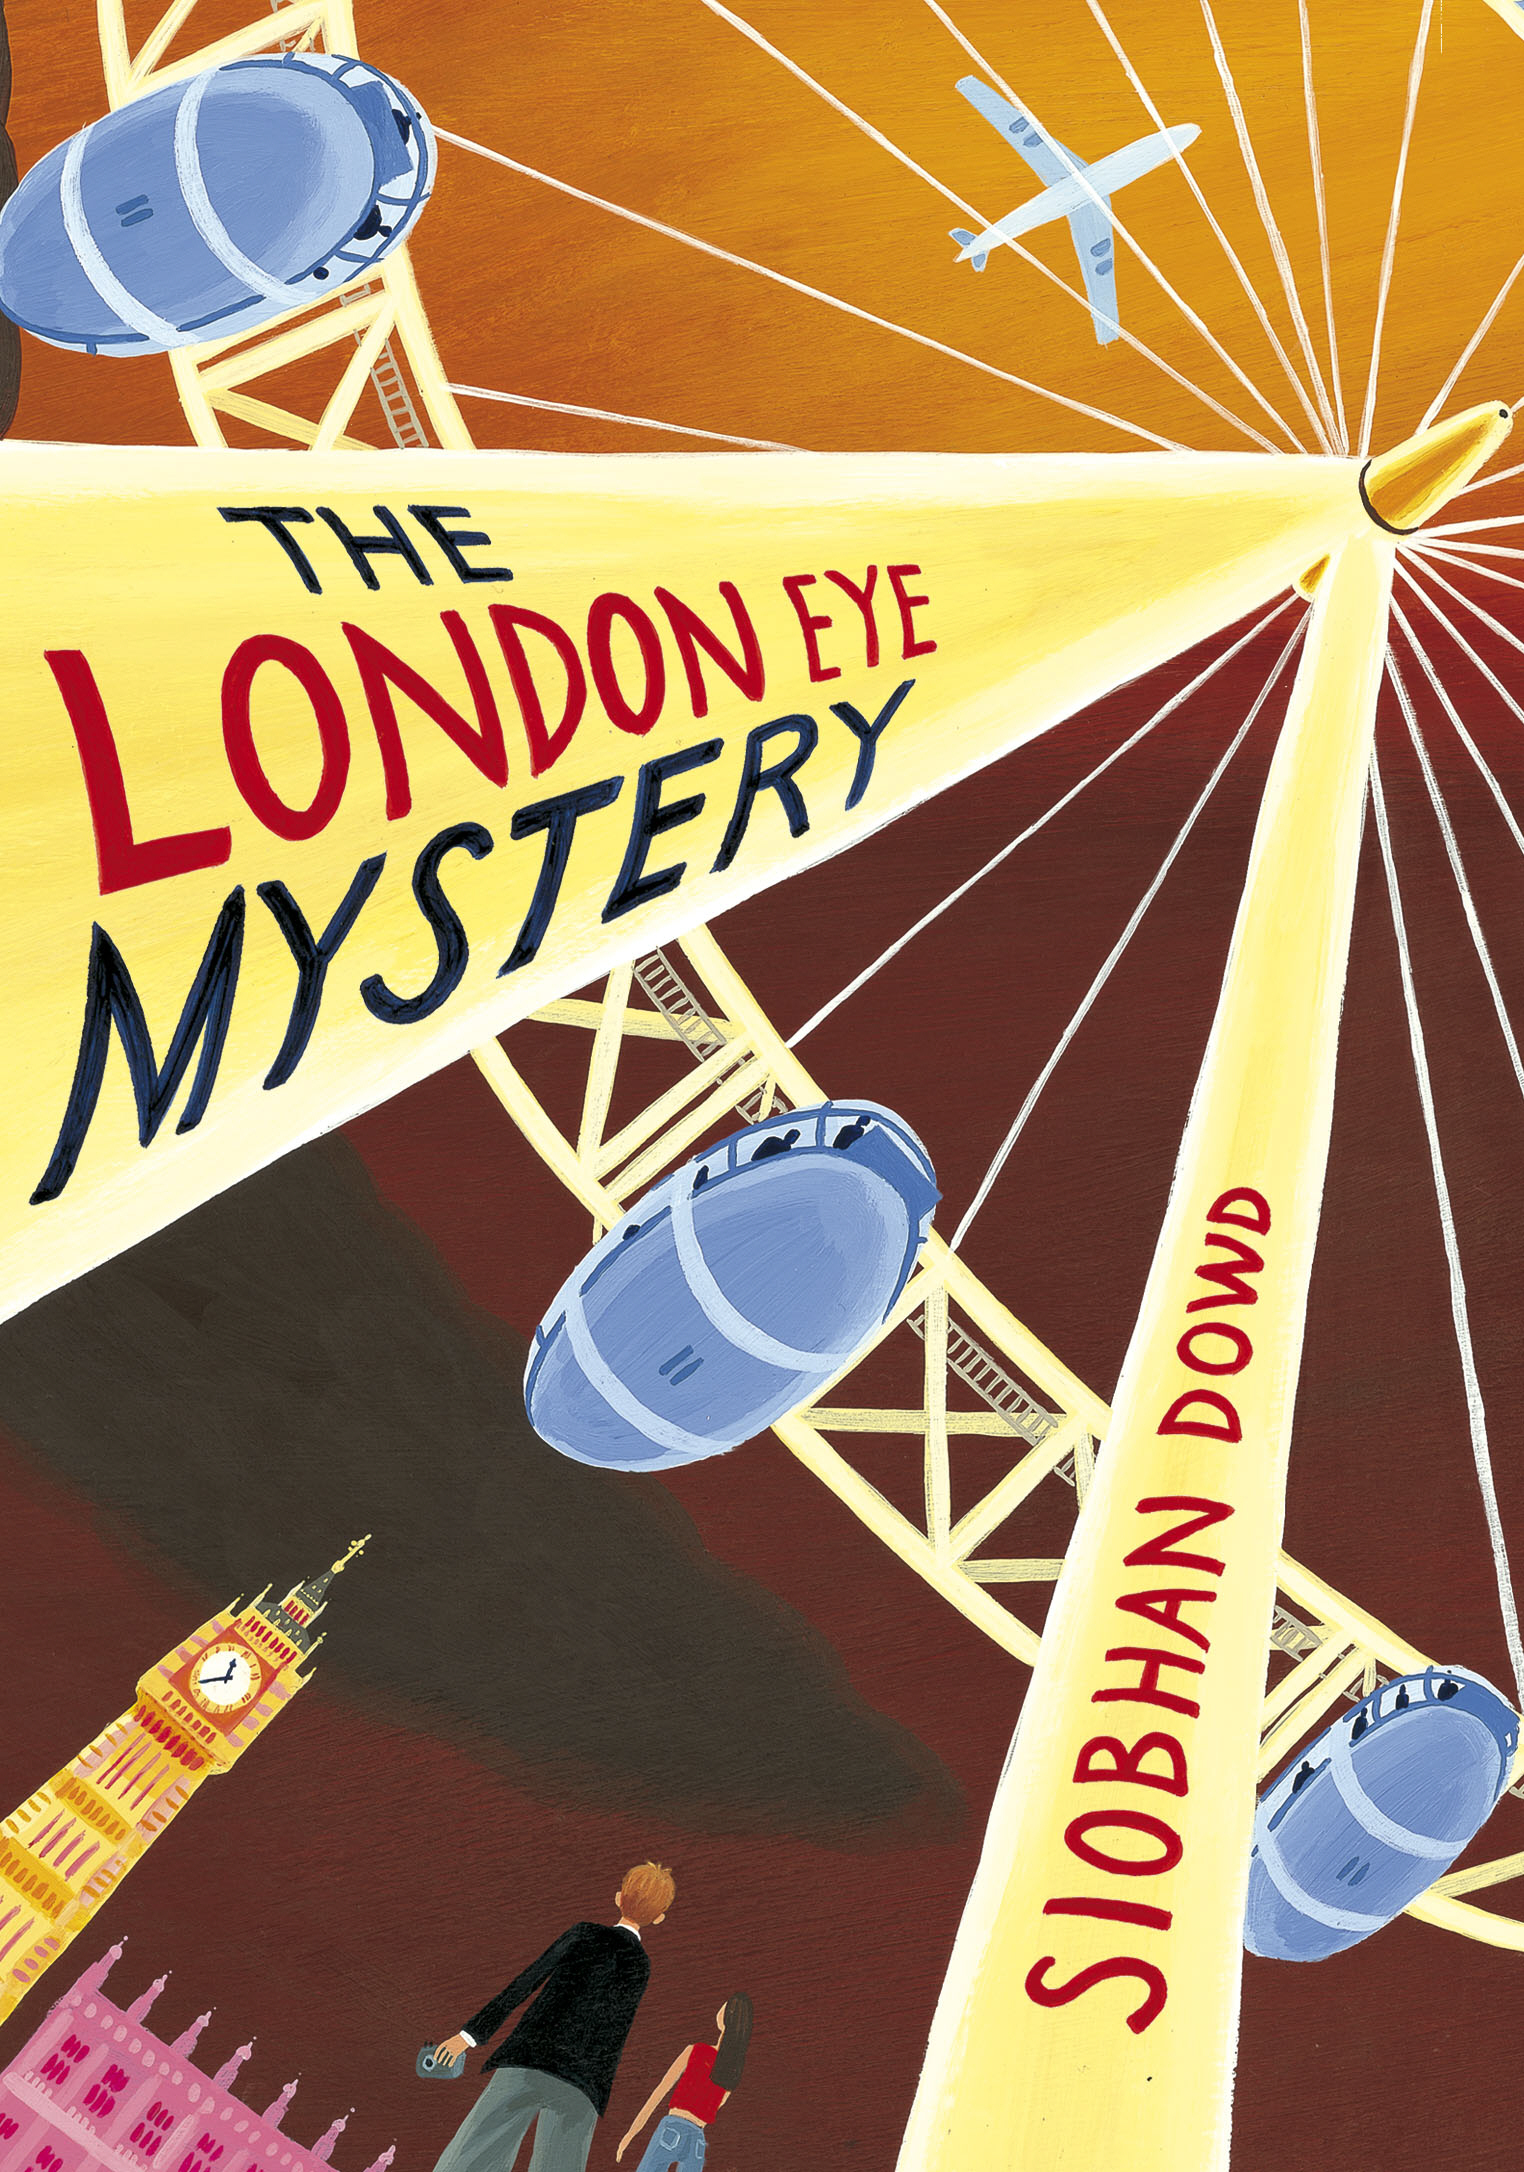 London Eye Book Cover